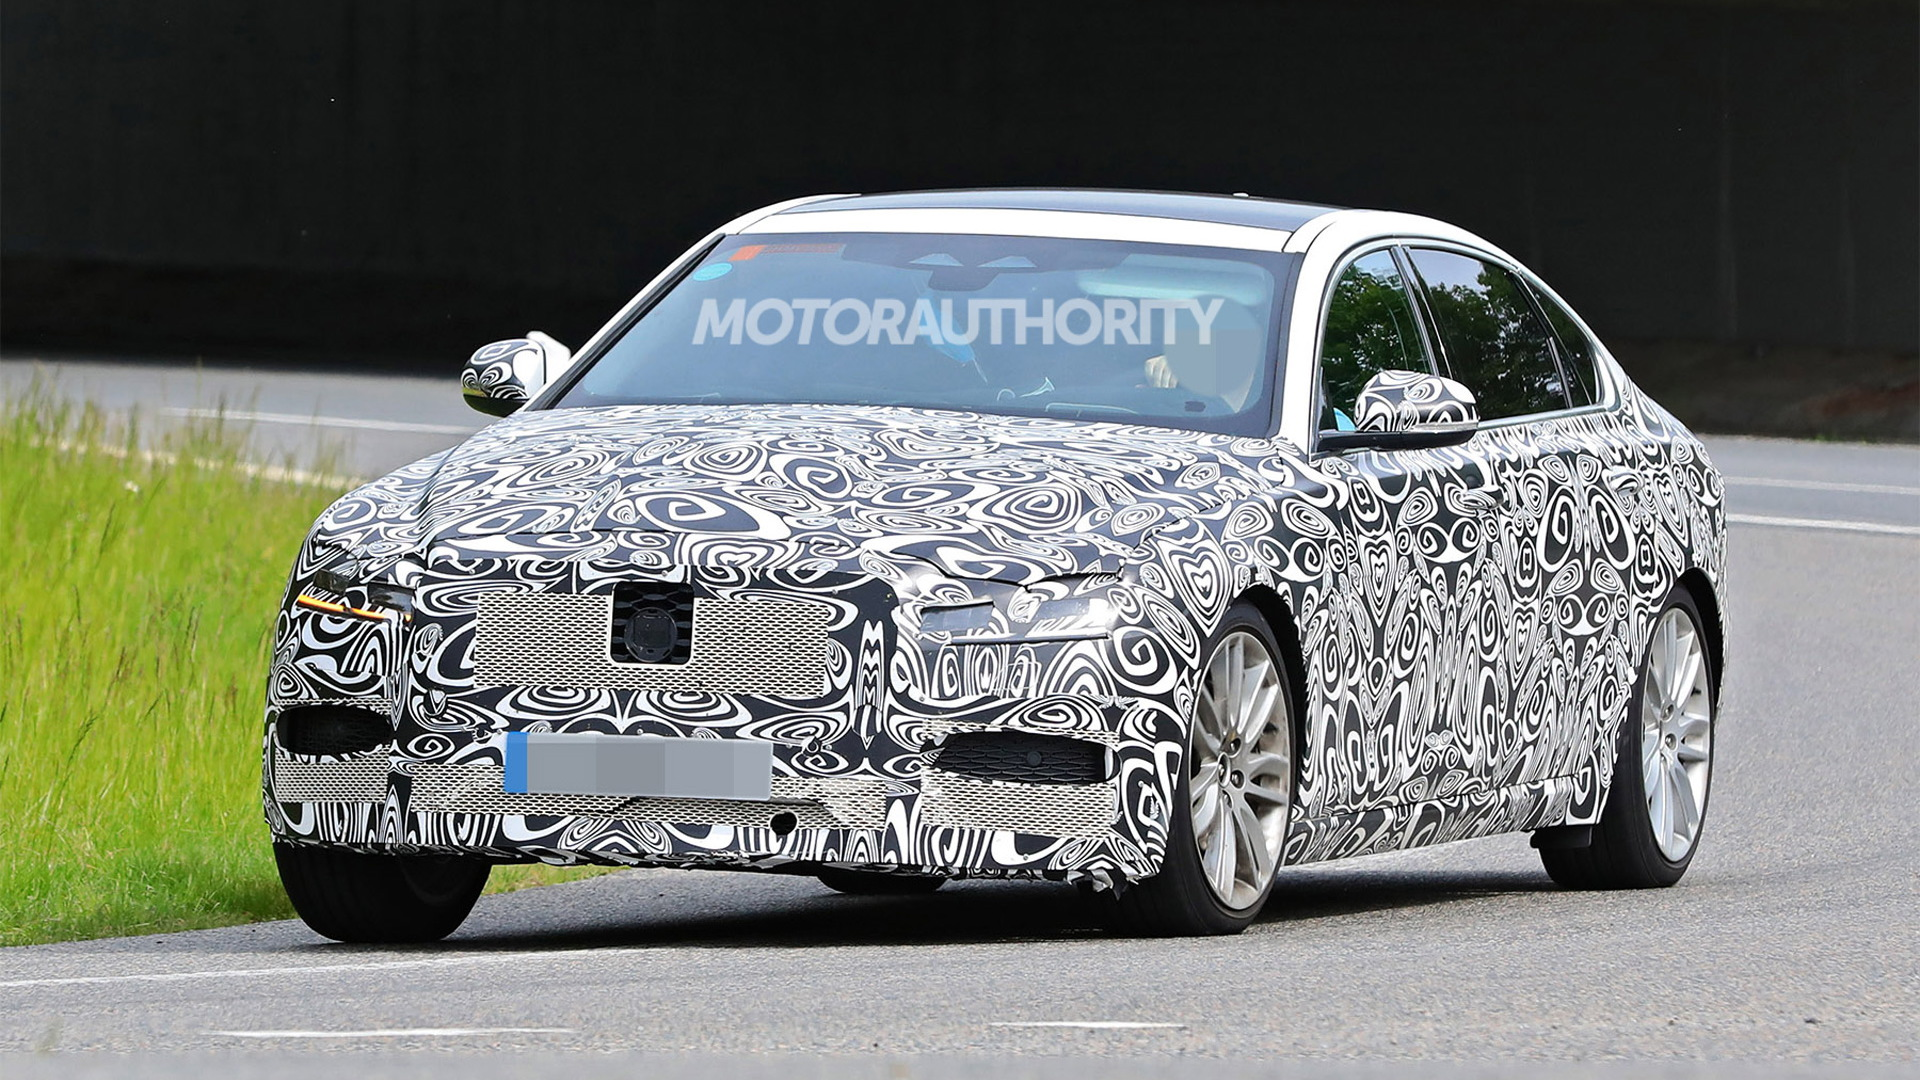 2021 Jaguar XFL facelift spy shots - Photo credit: S. Baldauf/SB-Medien